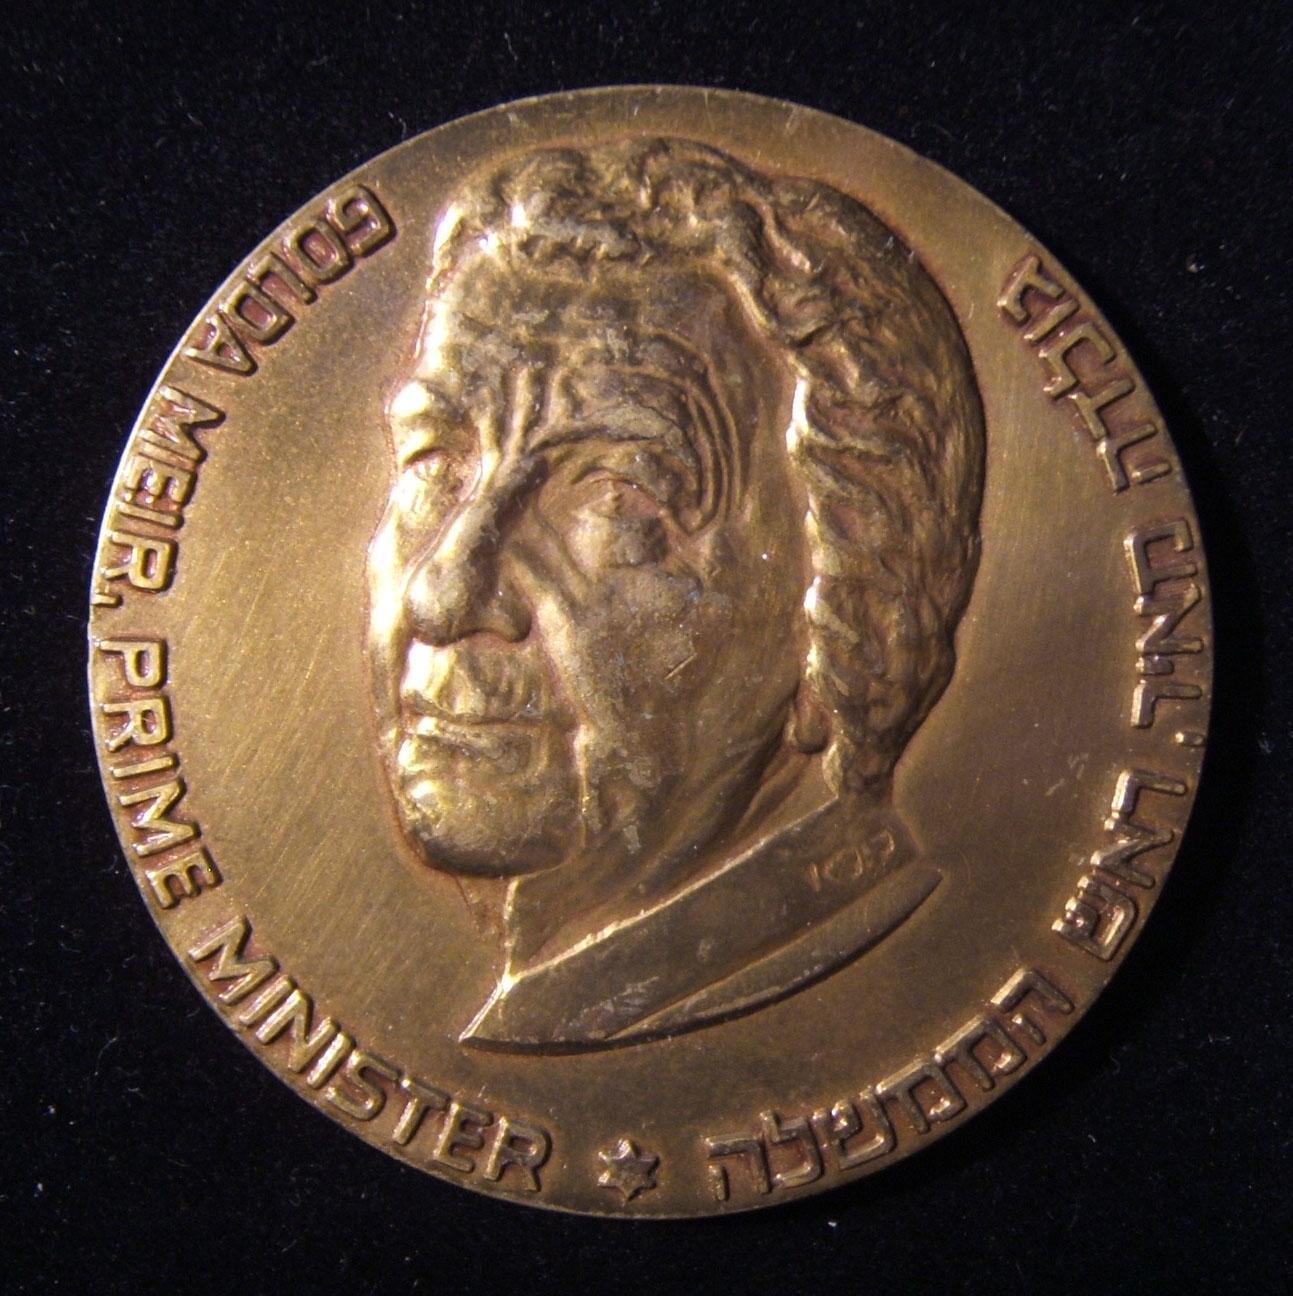 Israel: PM Golda Meir / Knesset Building numbered medal by the Shekel Co.; size: 59.5mm; weight: 78.35g.